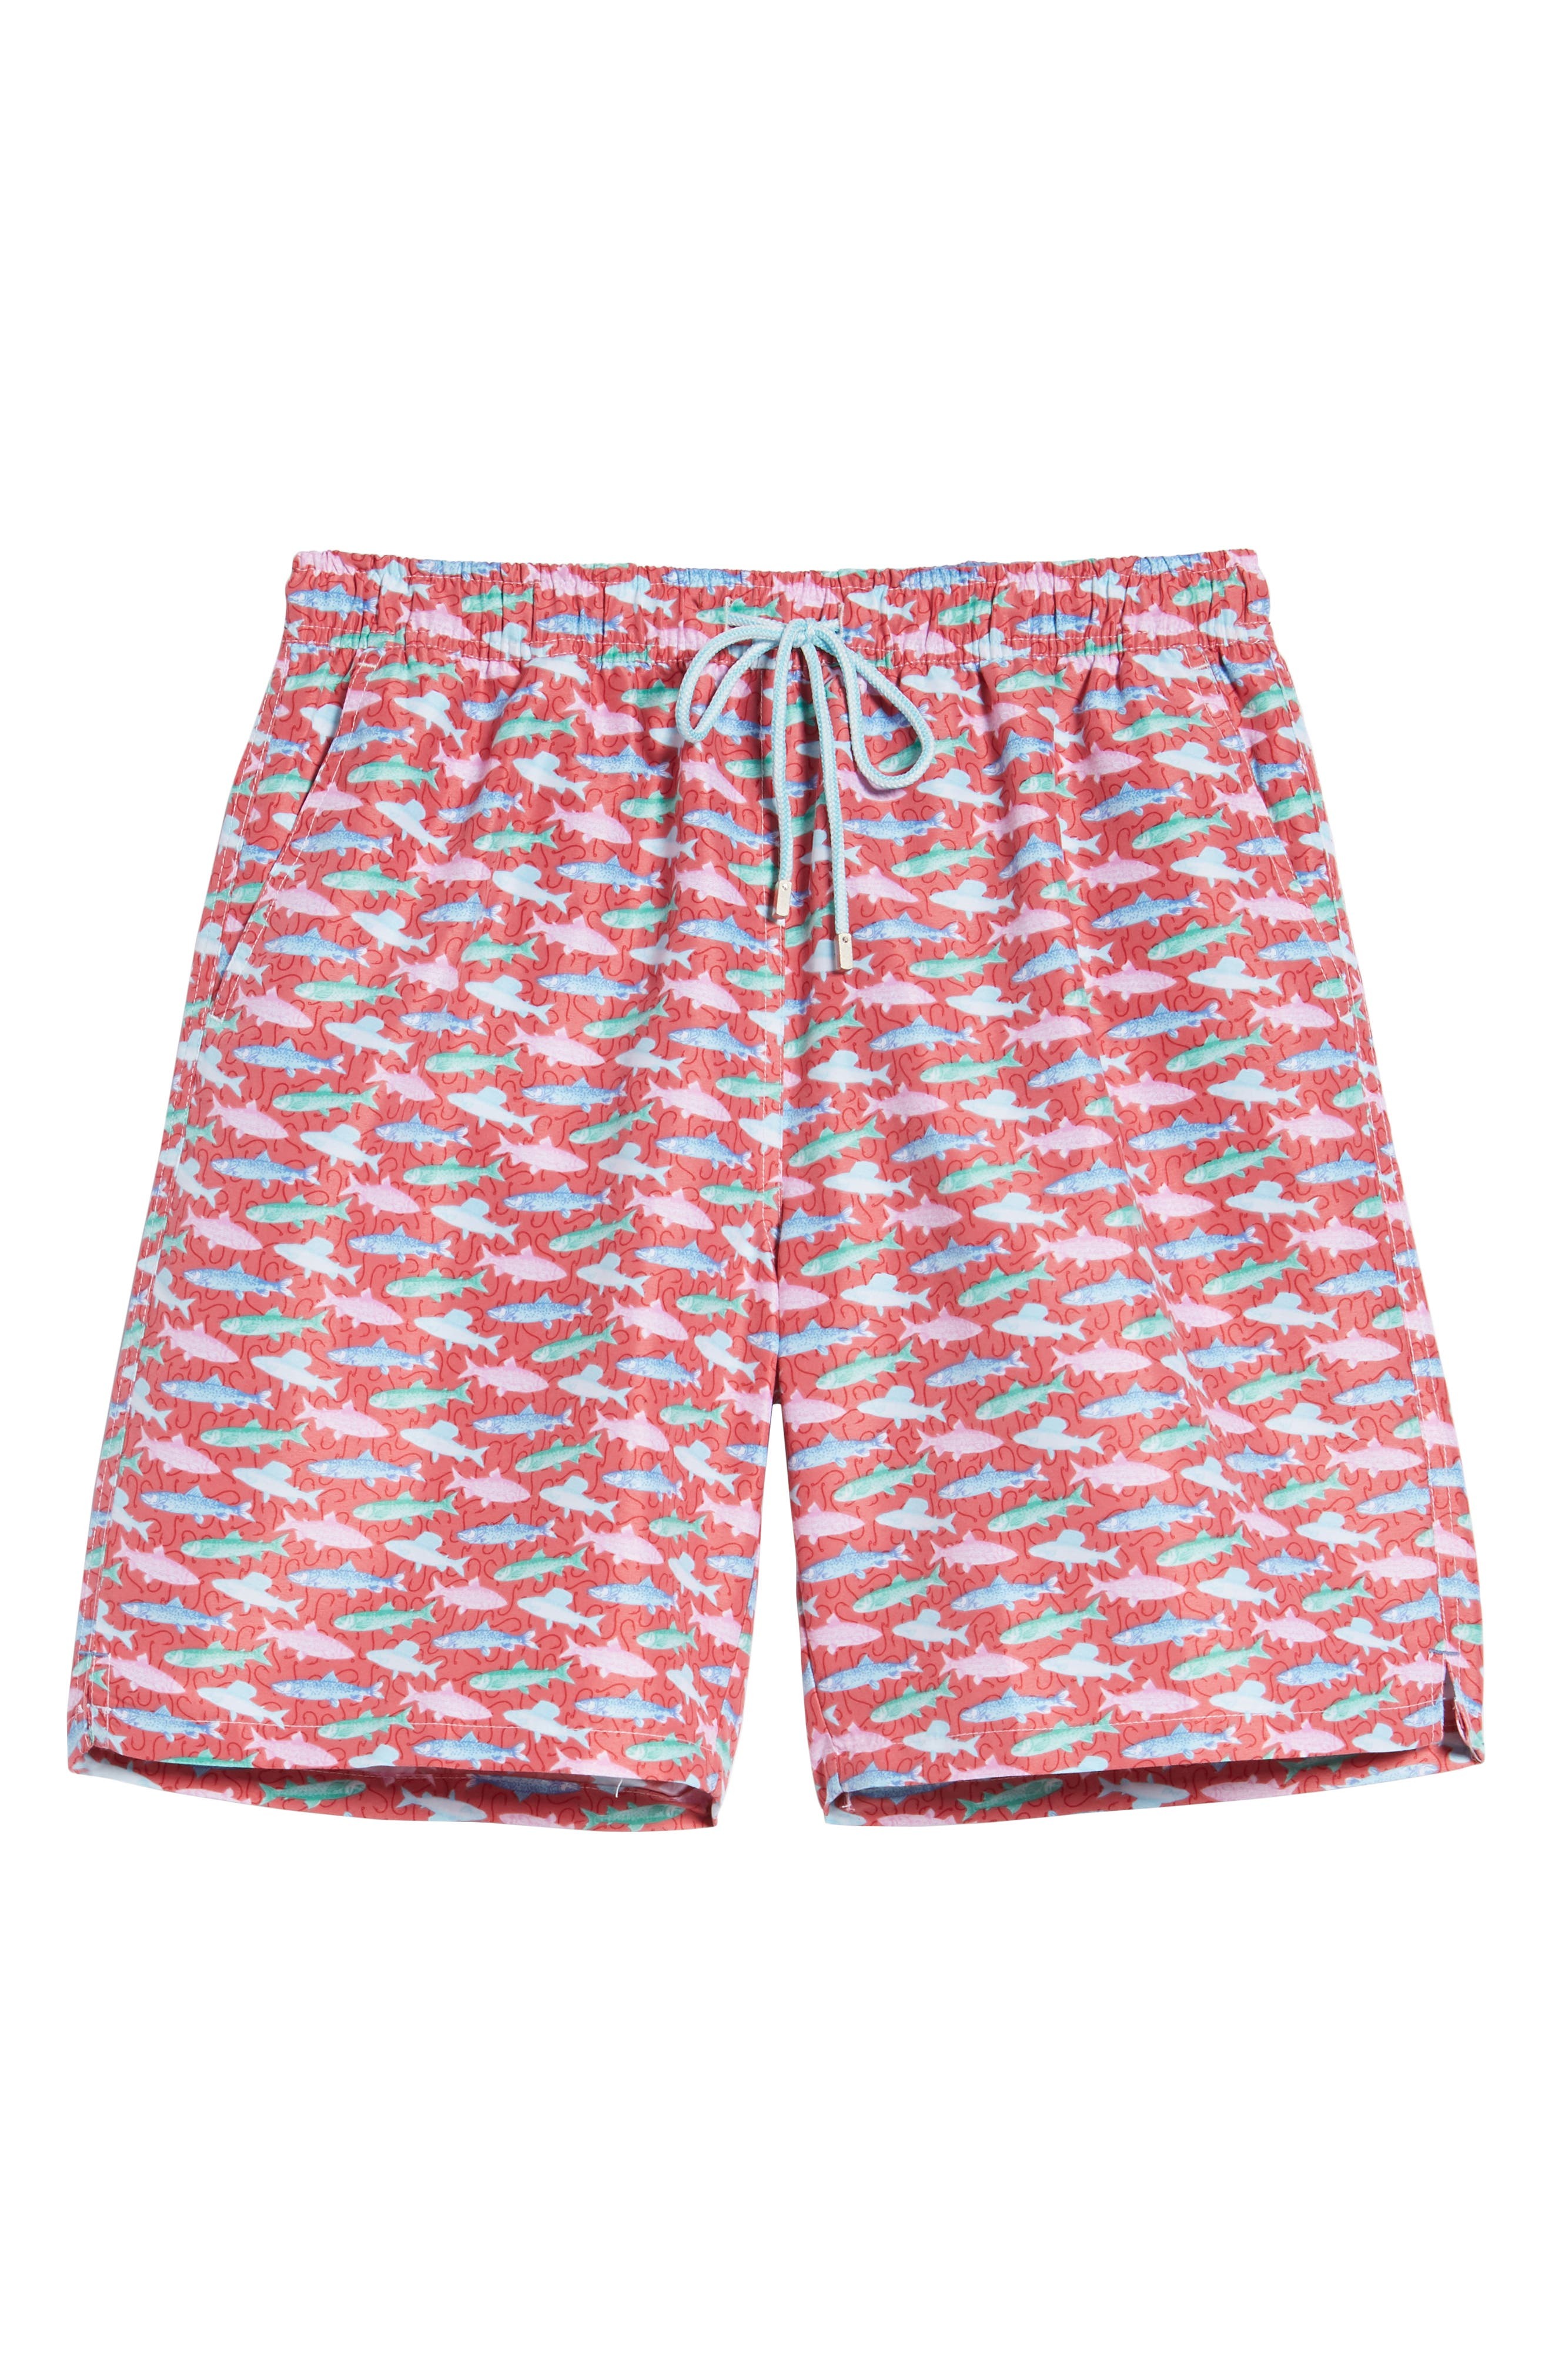 Fishermans Catch Swim Trunks,                             Alternate thumbnail 6, color,                             Cape Red